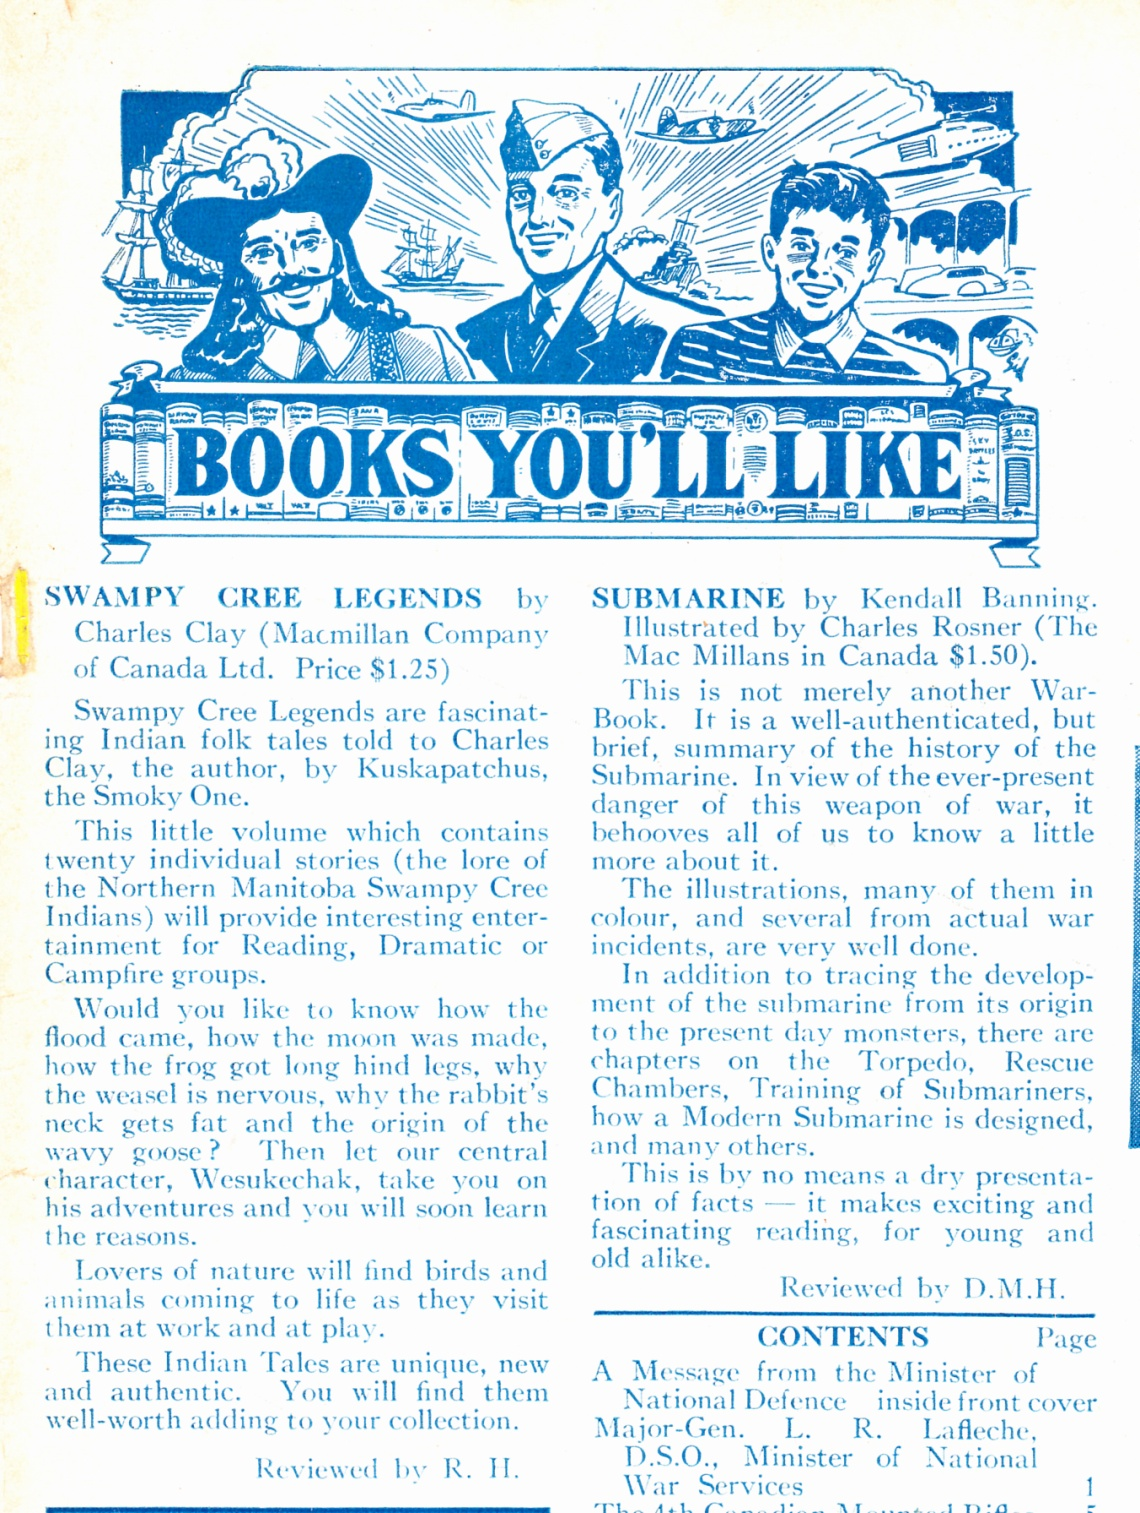 C:\Users\Robert\Documents\CARTOONING ILLUSTRATION ANIMATION\IMAGE COVER COMIC BOOK\BOOKS YOU'LL LIKE, Canadian Heroes, 1-2, Nov, 1942, Ibc.jpg